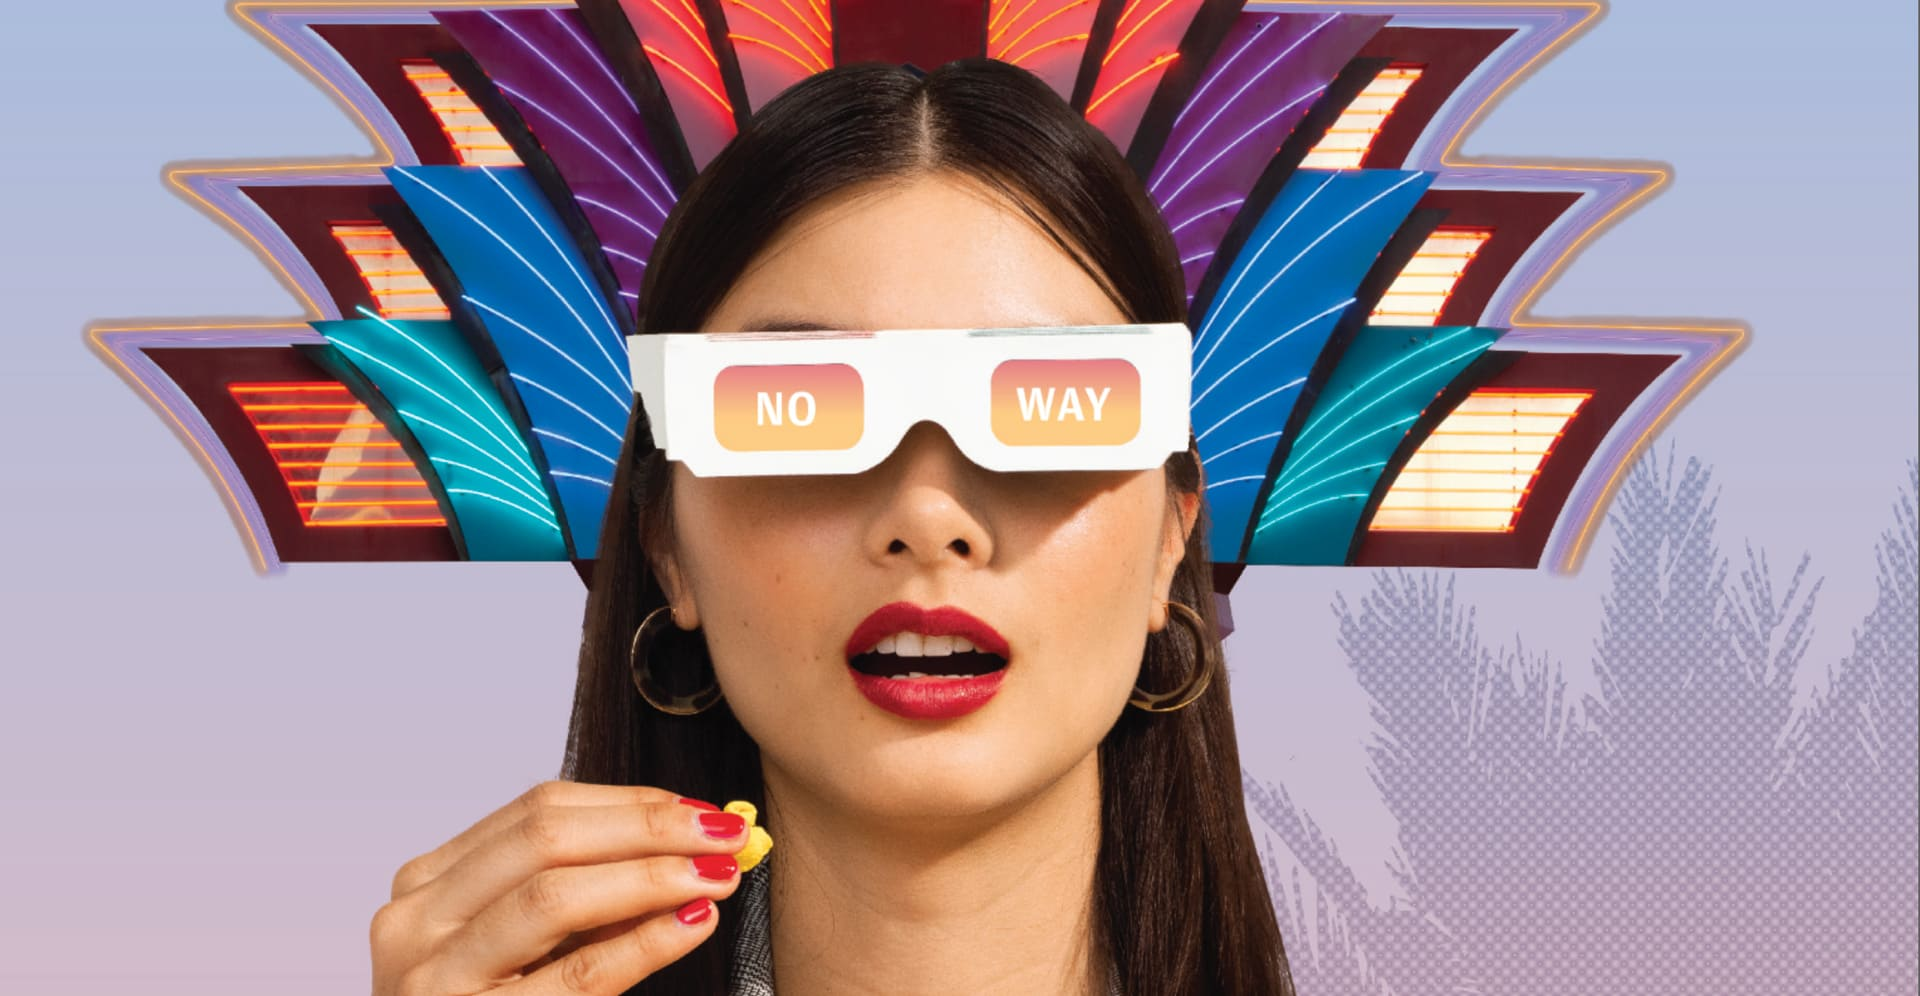 """Portrait of a woman wearing 3D glasses that say """"No Way"""" in front of a surreal purple background."""